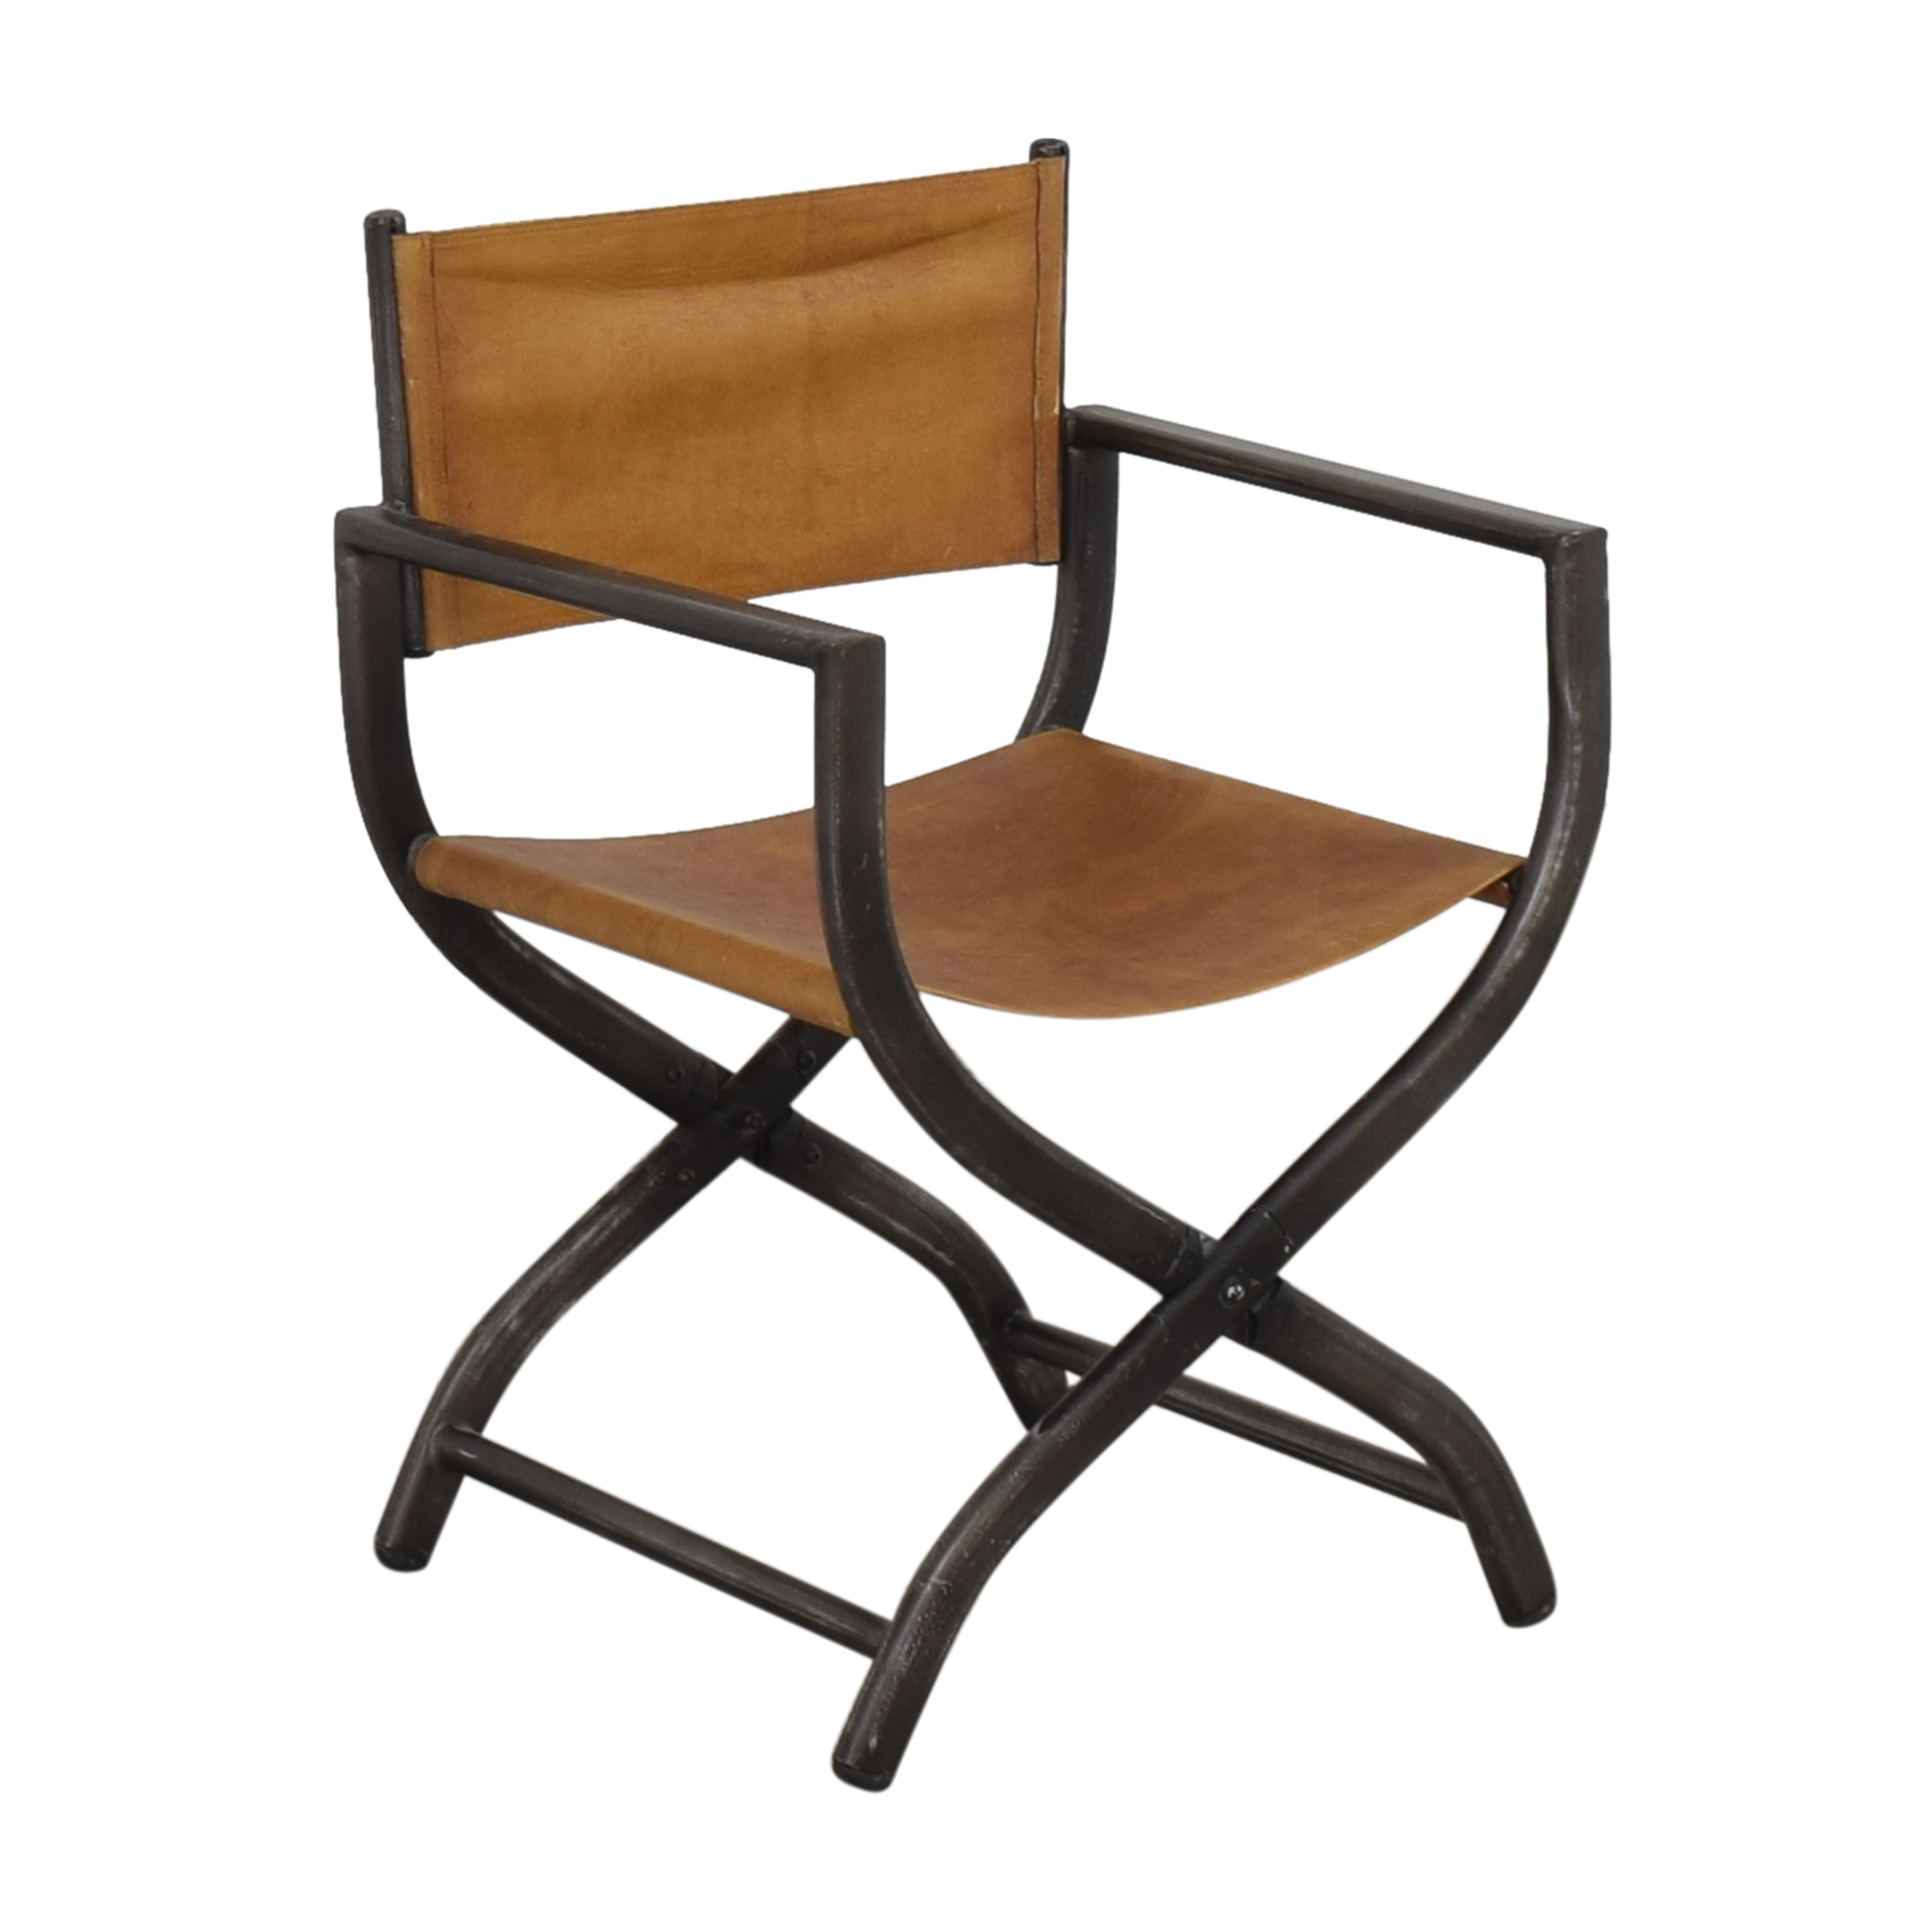 Restoration Hardware 1970s French Director's Chair sale